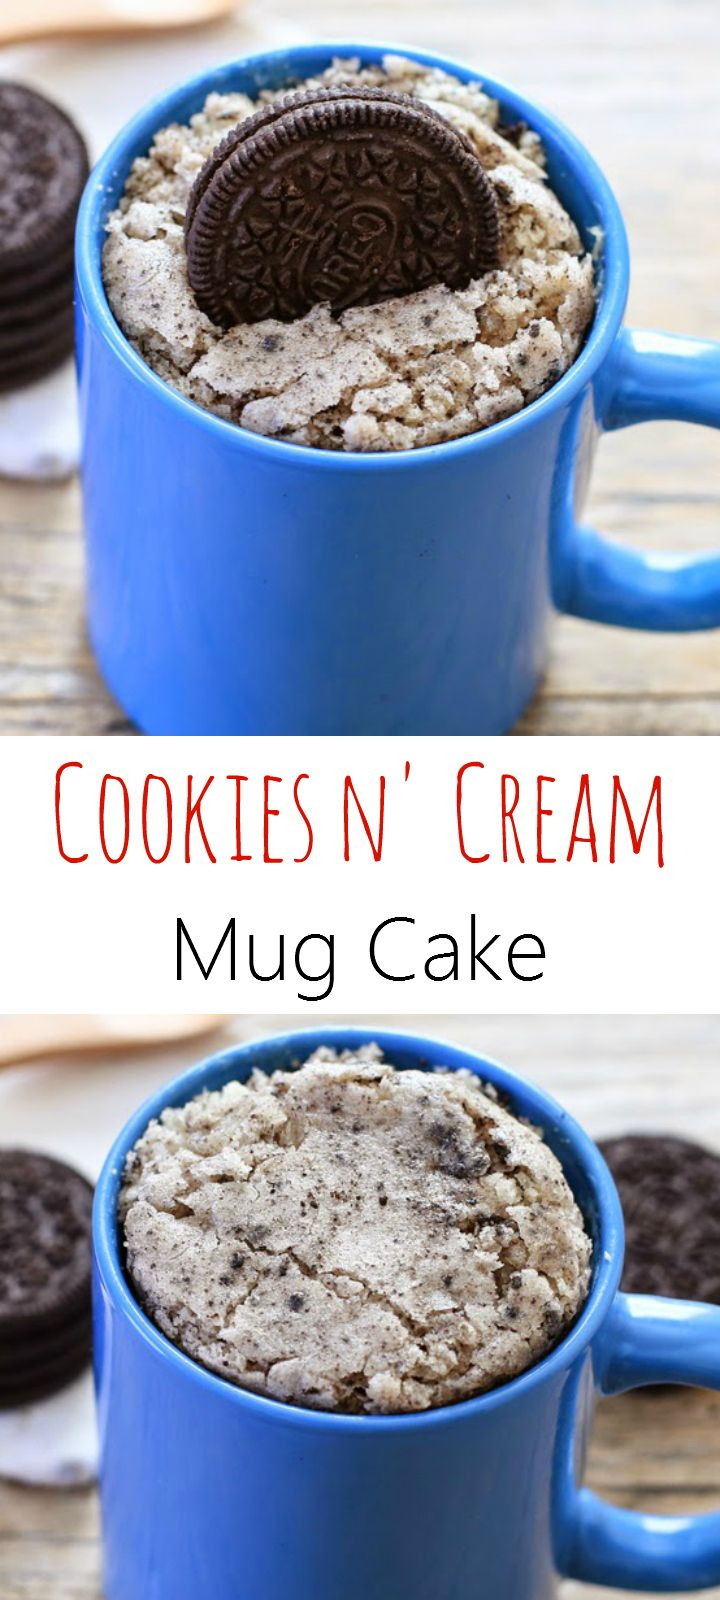 Cookies and Cream Mug Cake! This is so easy and tastes so nice. Anyone can make it, you 100% need to try it.